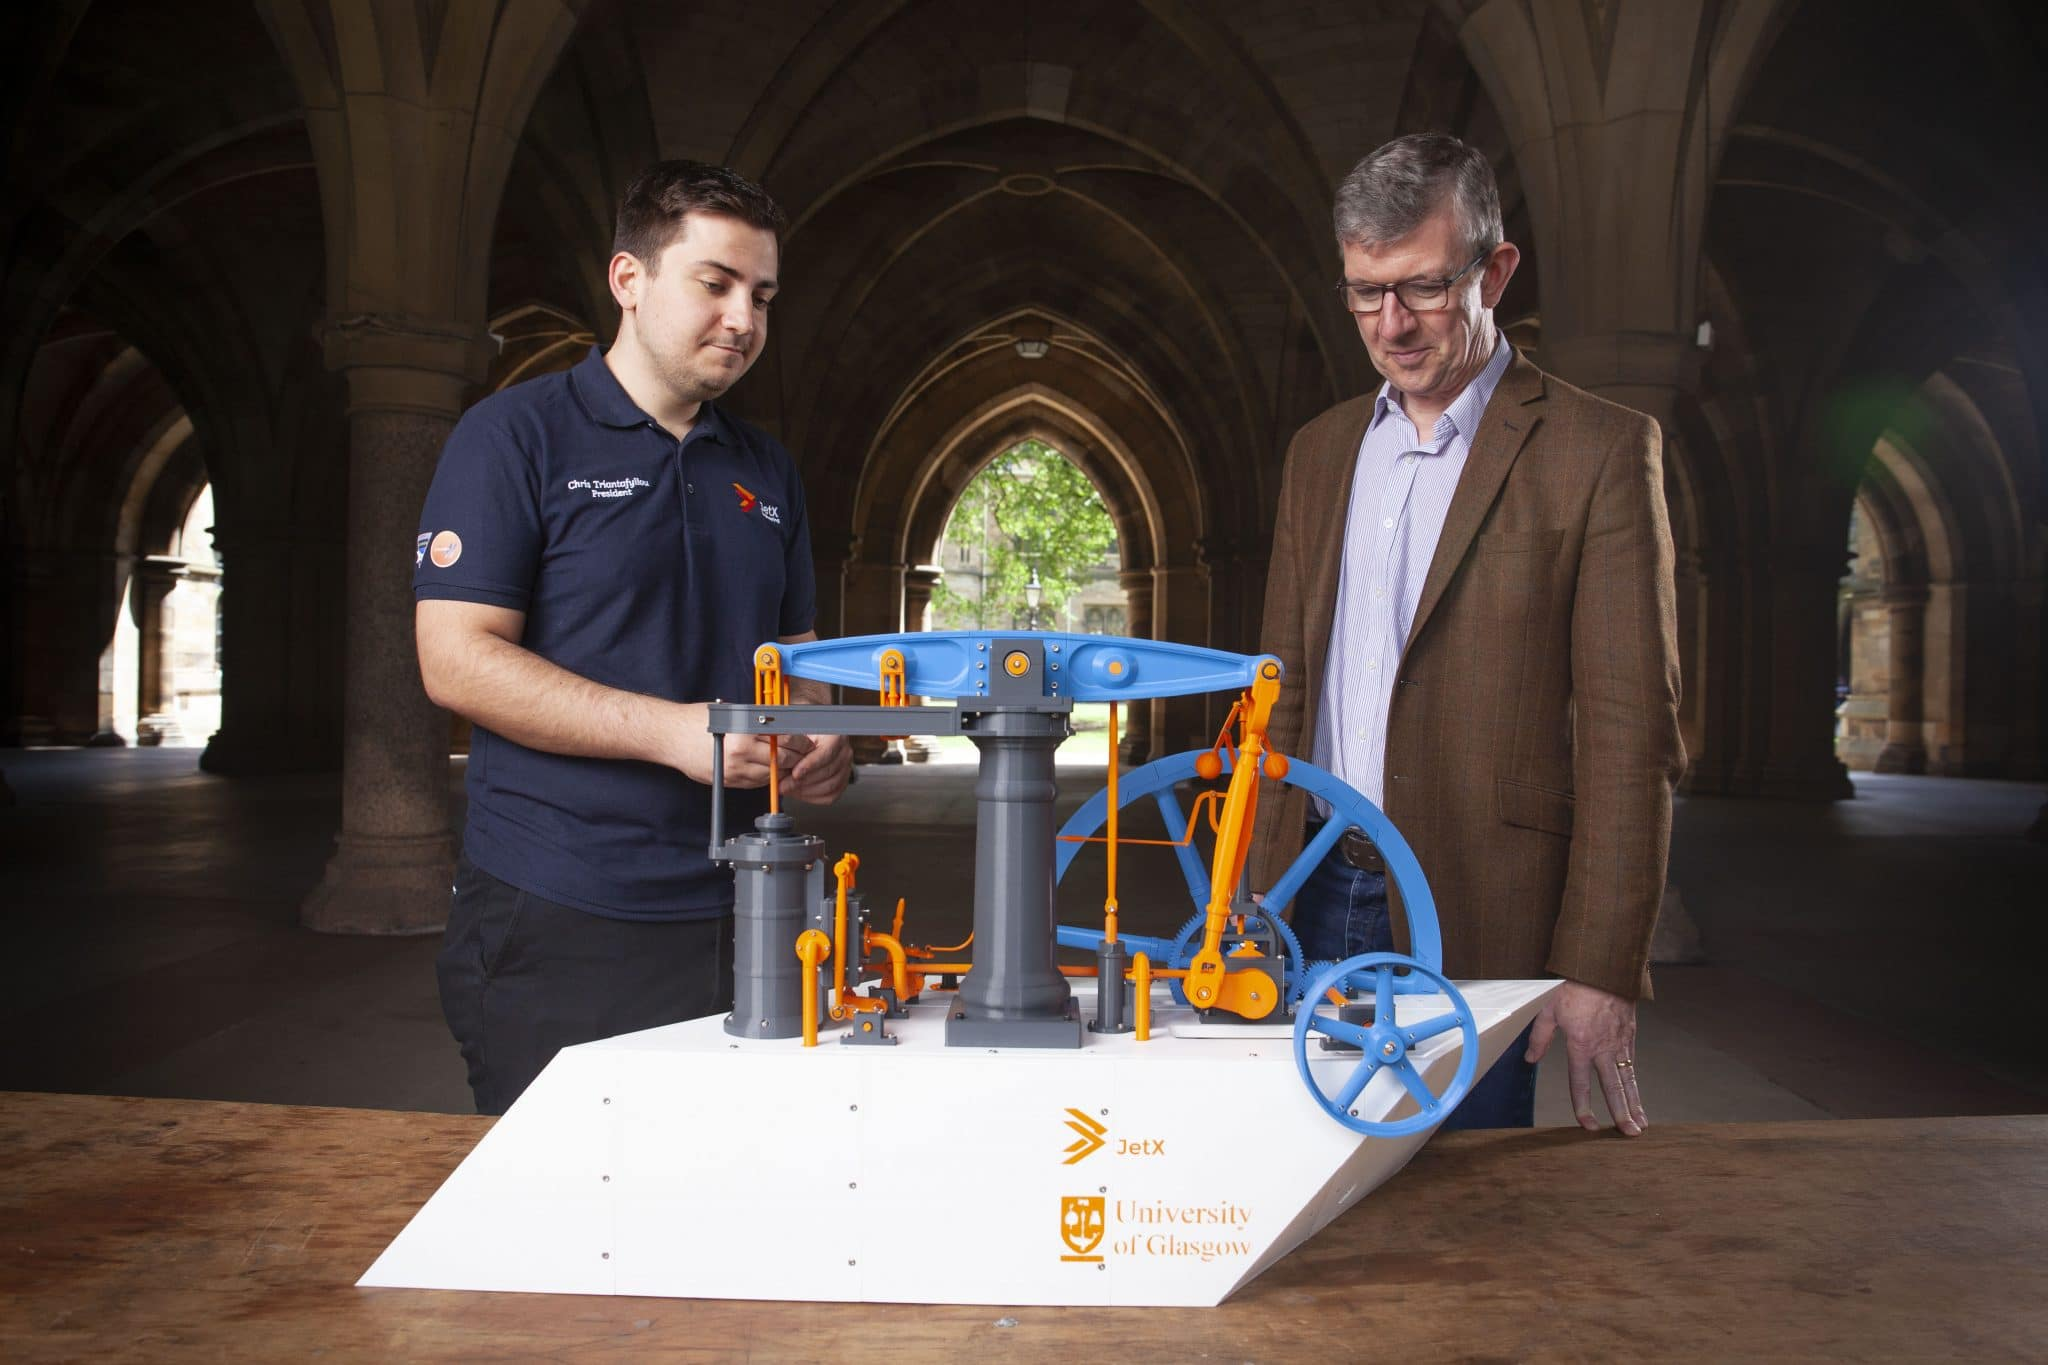 JetX University of Glasgow steam engine